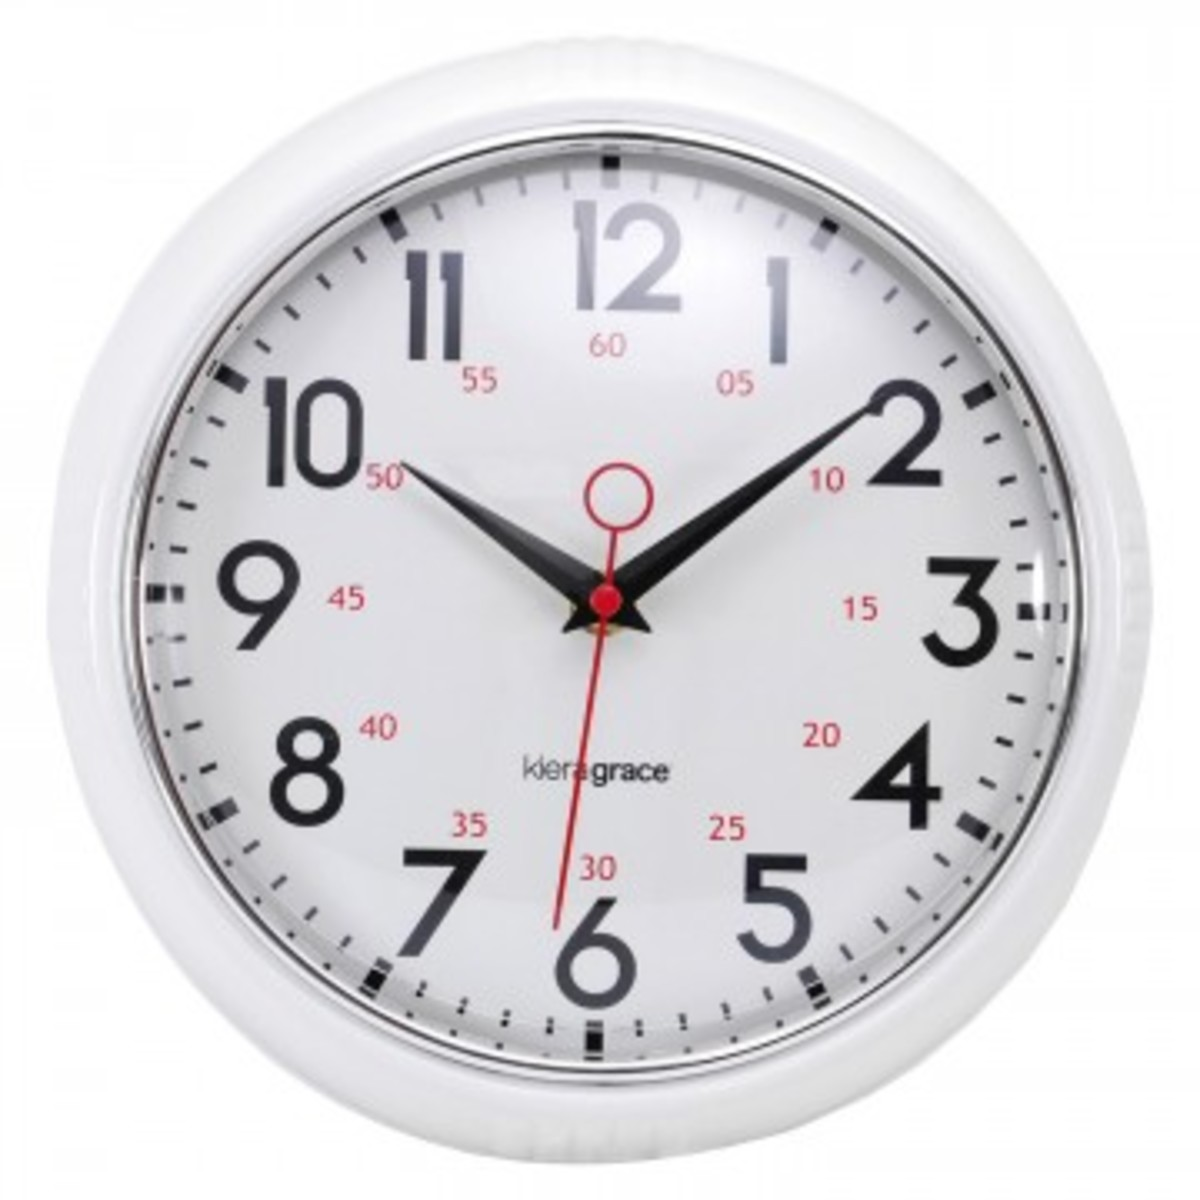 This clock is one of my most important tools.